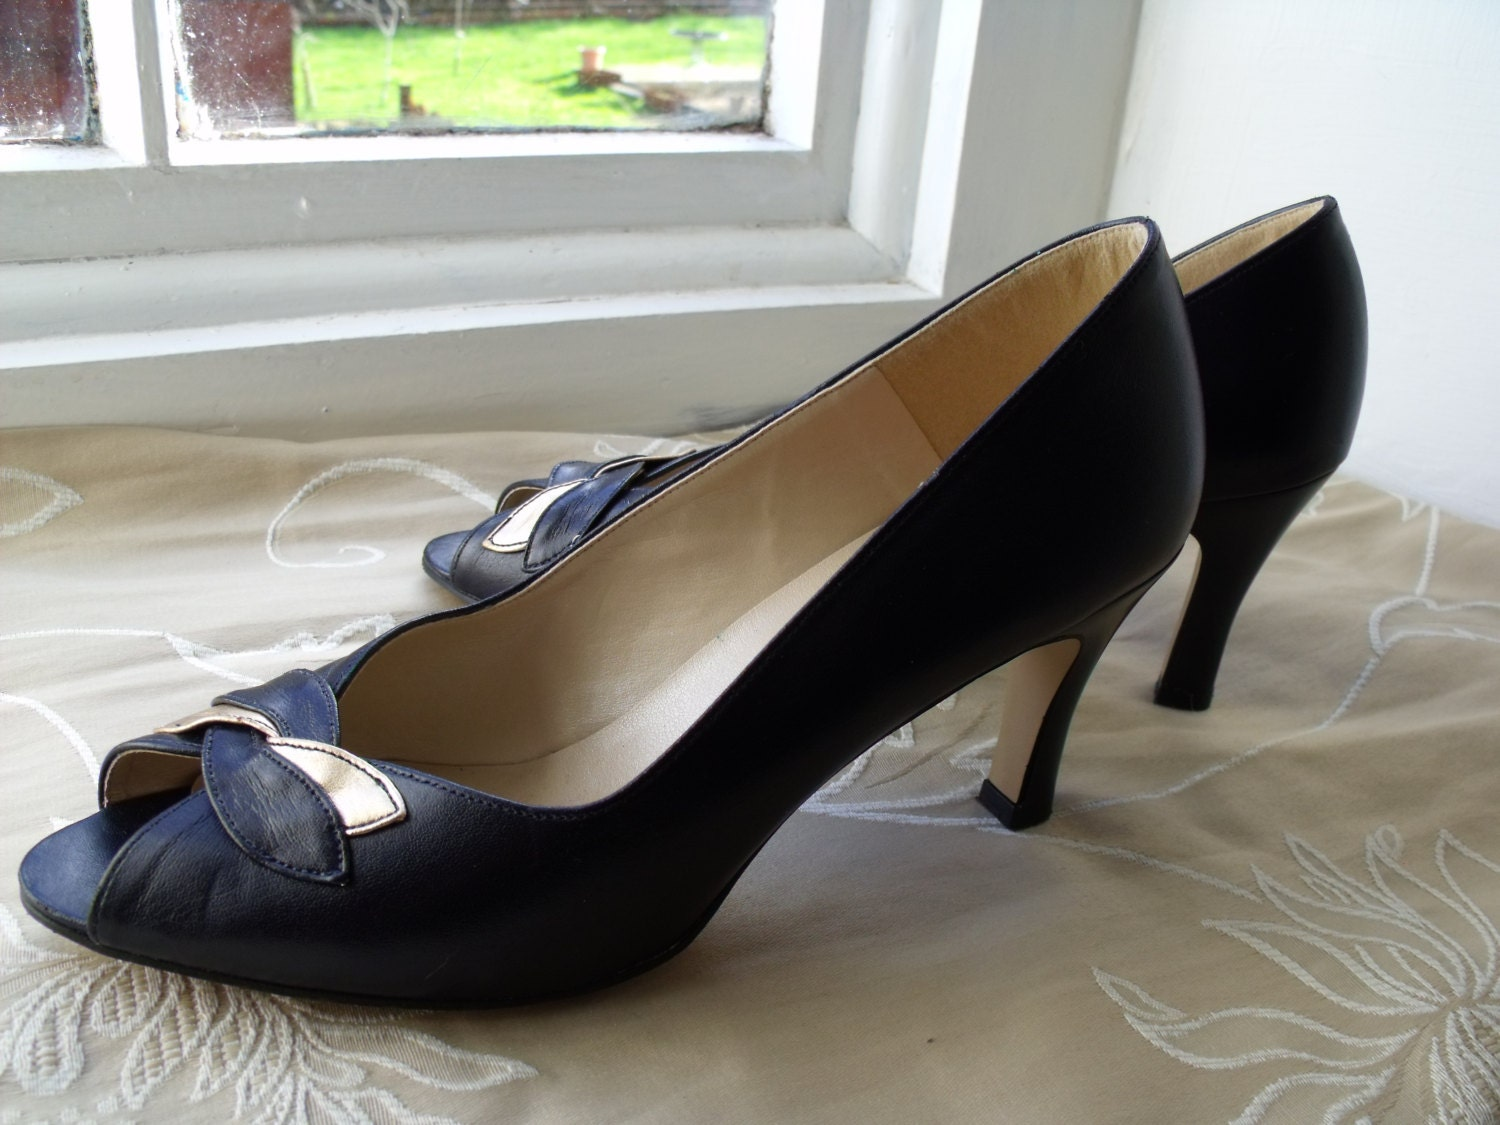 Find great deals on eBay for black court shoes. Shop with confidence.